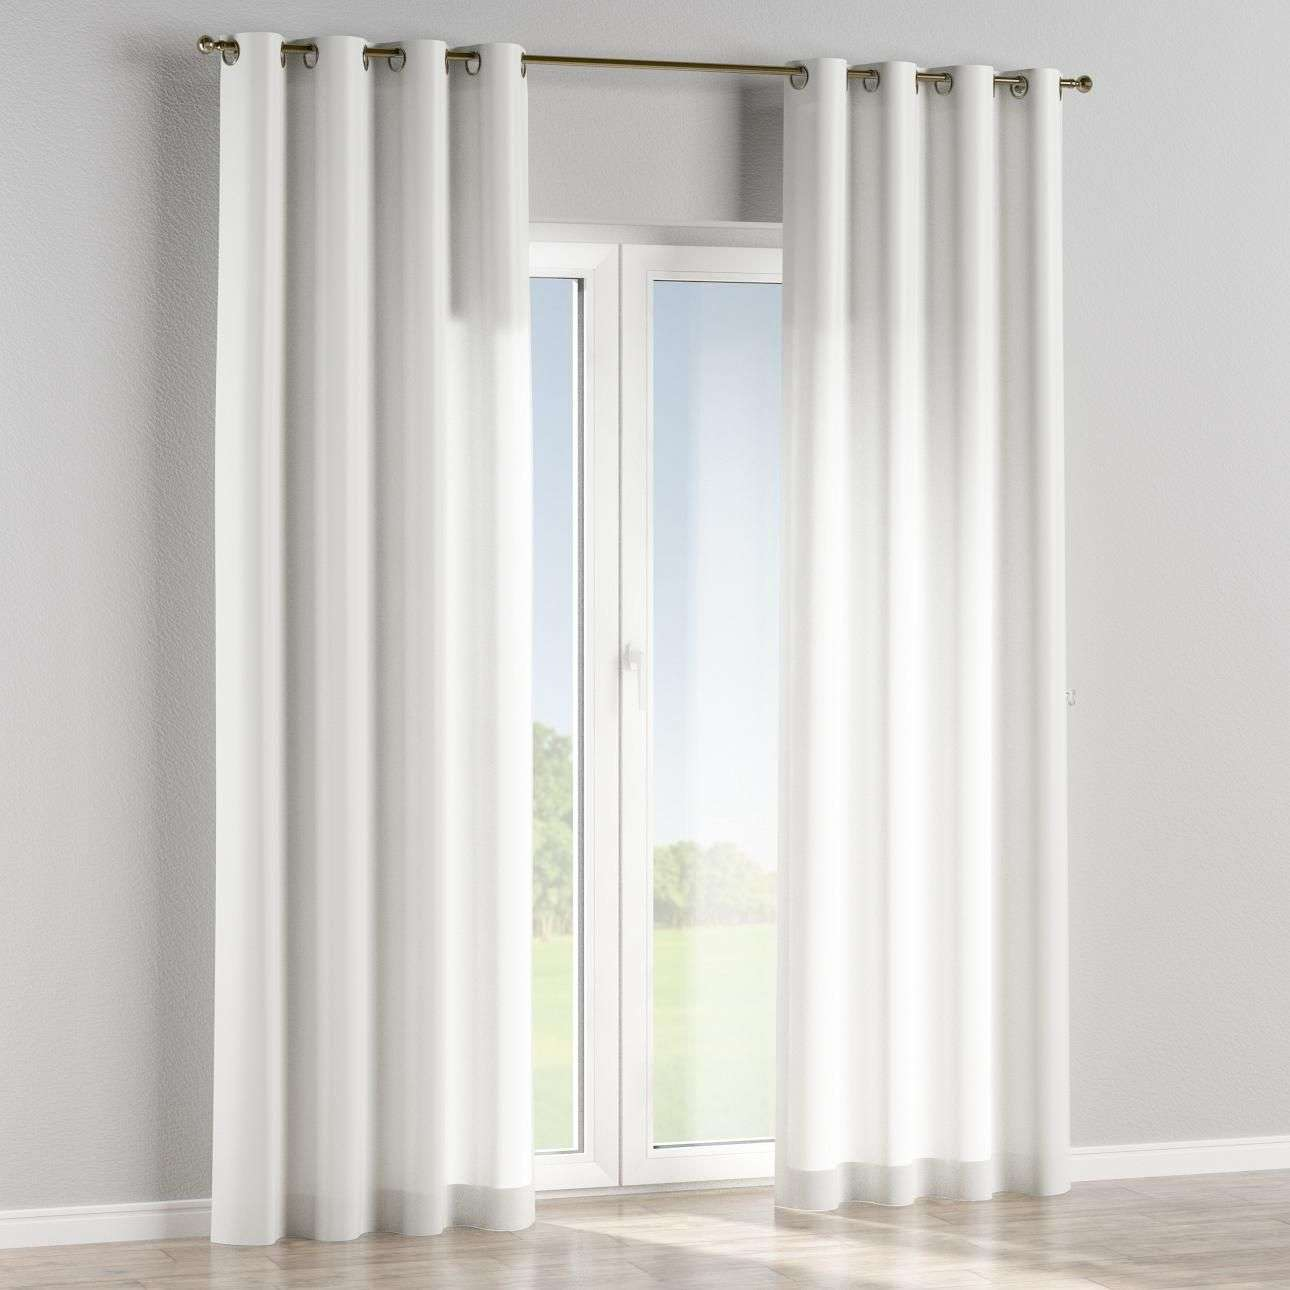 Eyelet curtains in collection Fleur , fabric: 137-20